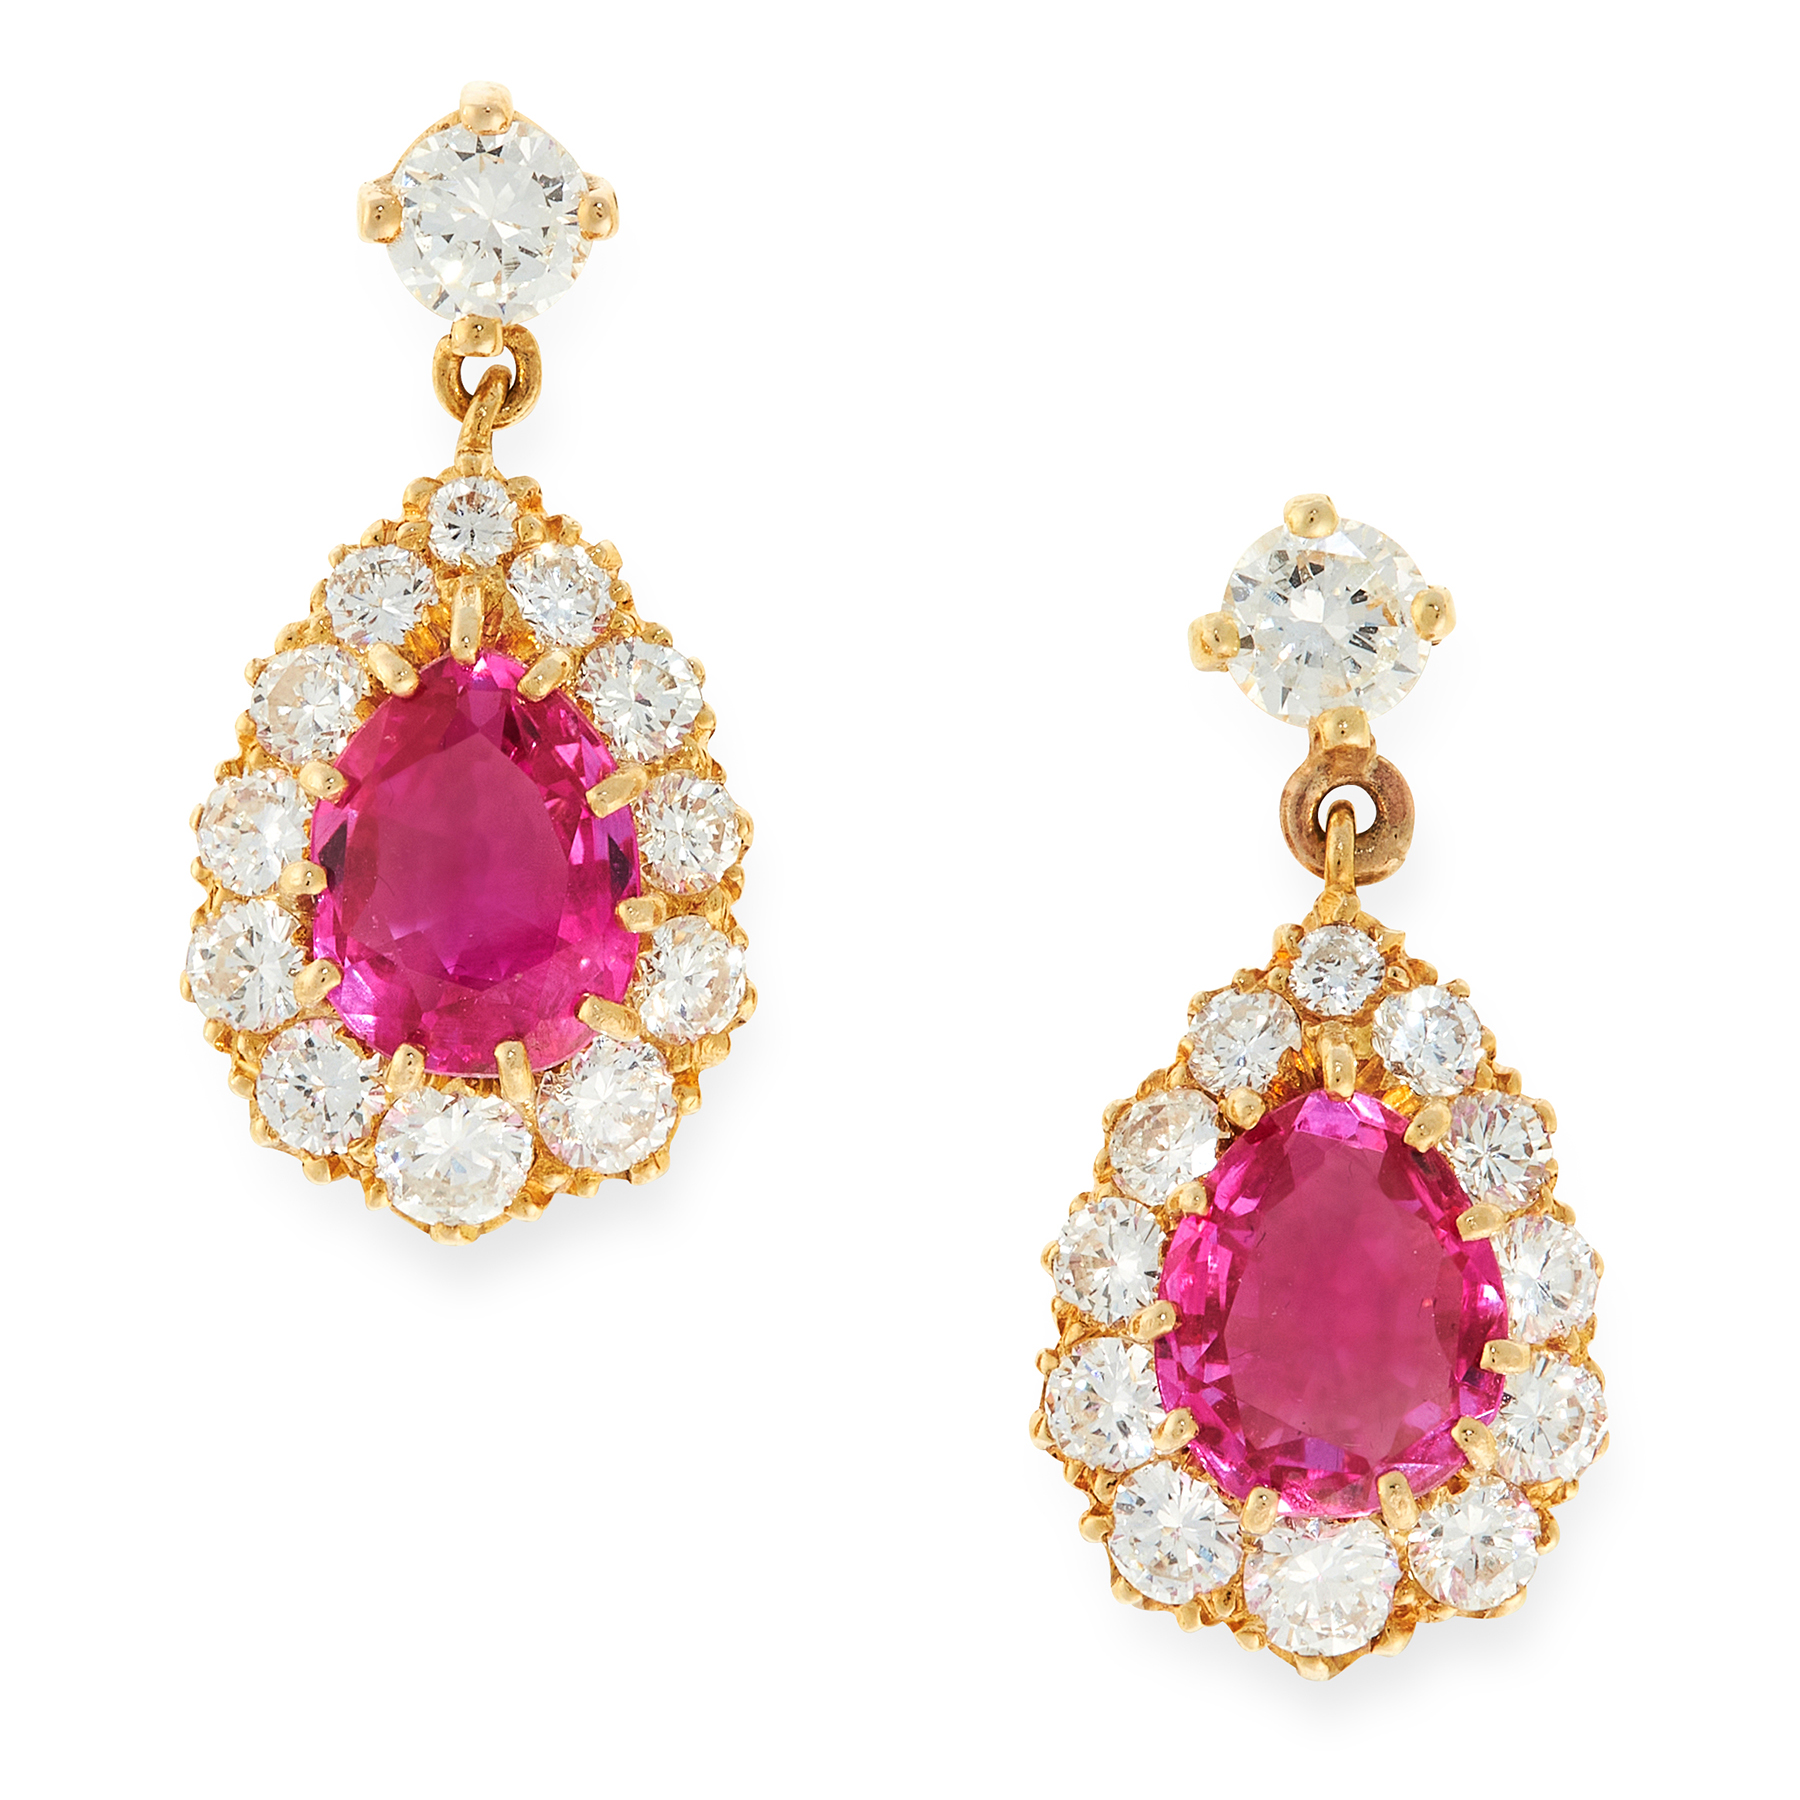 A PAIR OF BURMA NO HEAT RUBY AND DIAMOND EARRINGS in 18ct yellow gold, each set with a pear cut